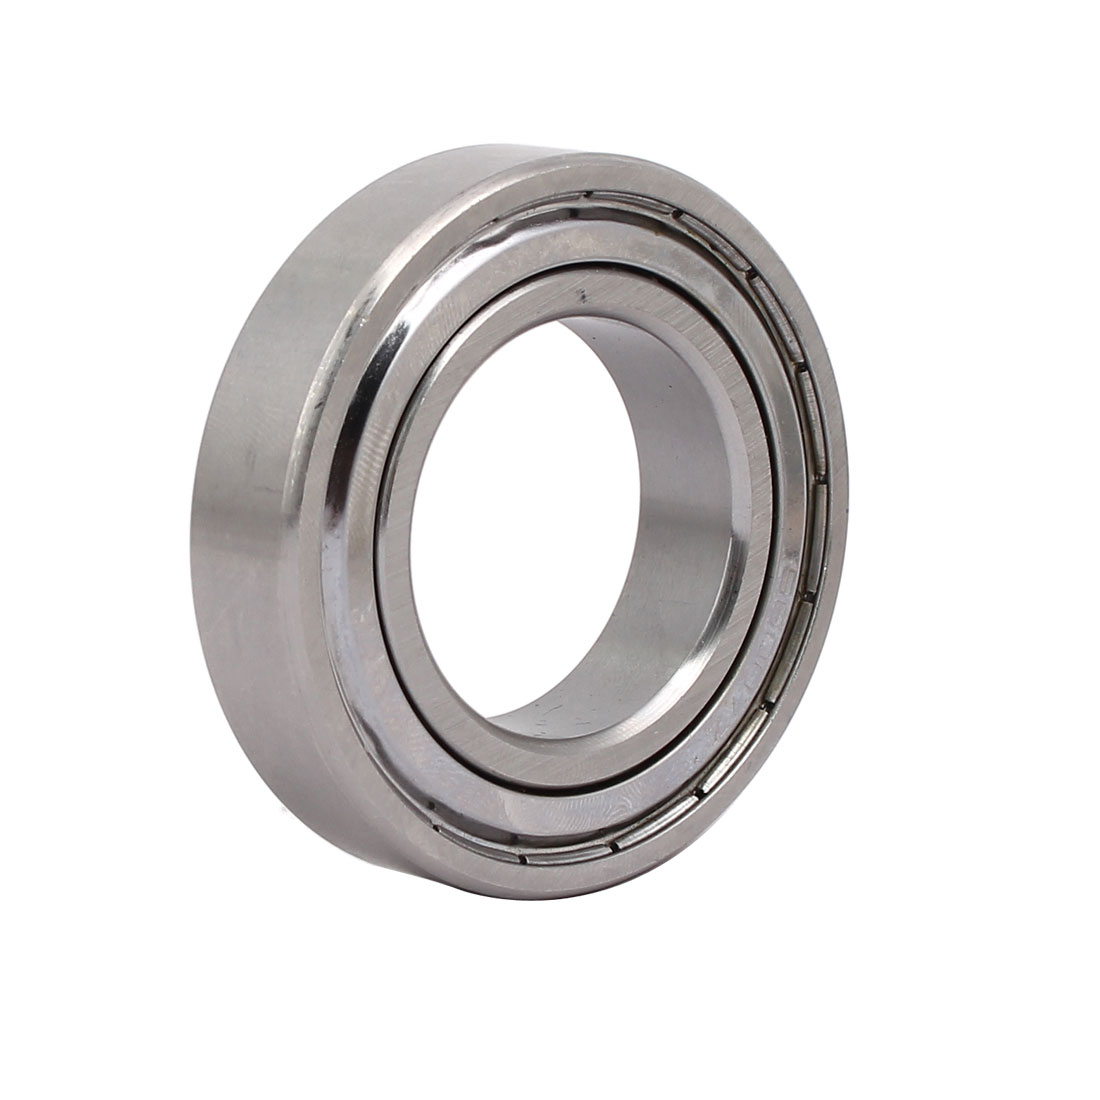 S6007Z 62mmx35mmx14mm Stainless Steel Shielded Deep Groove Radial Ball Bearing